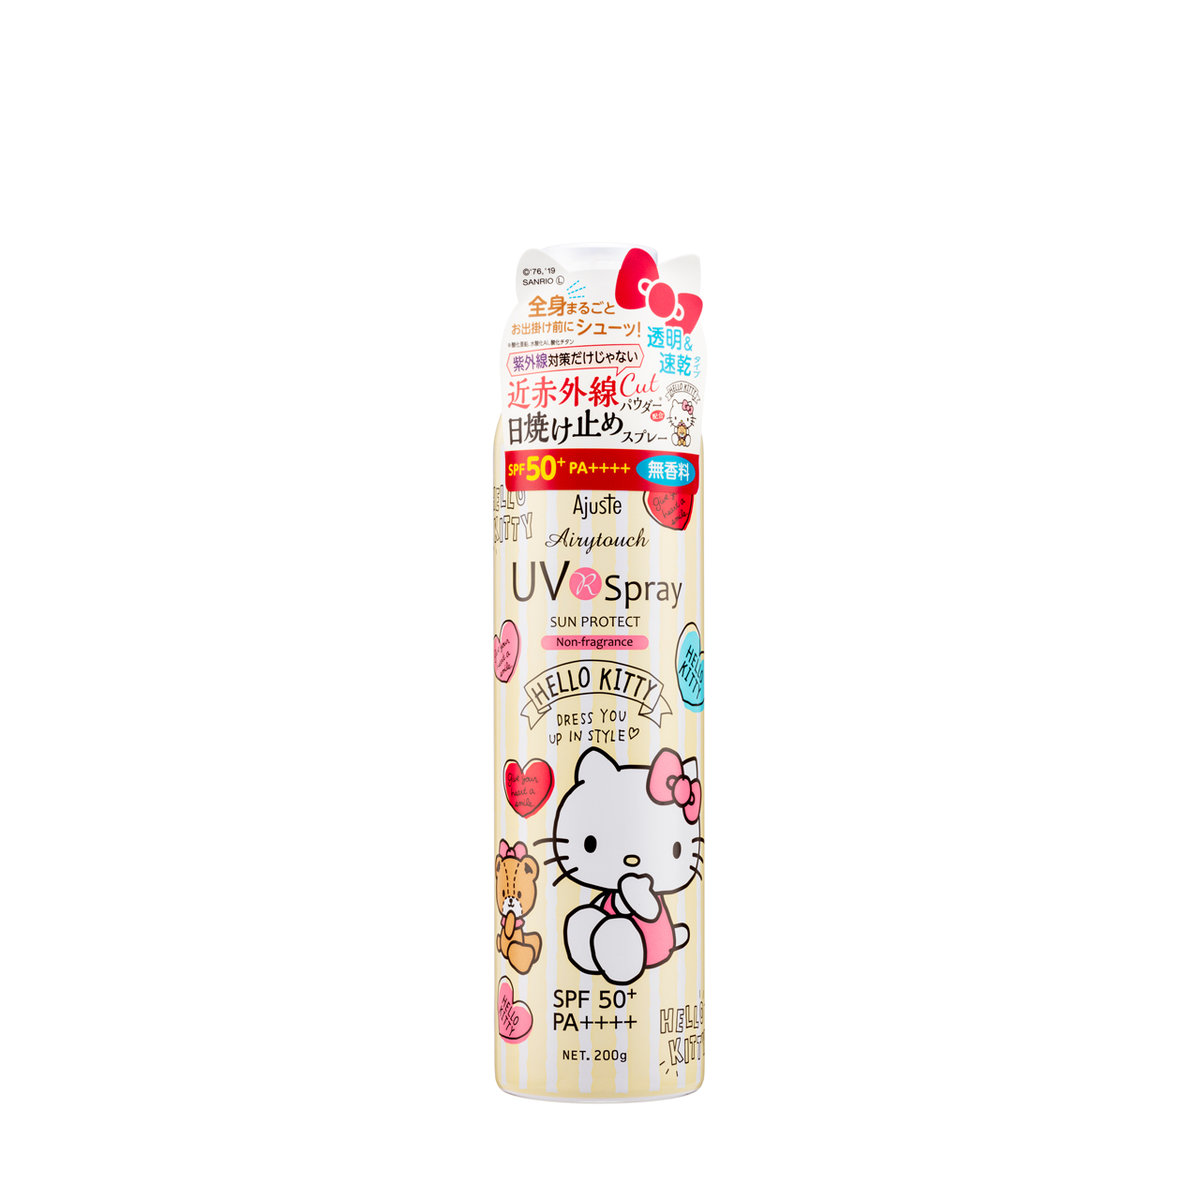 SPF50+ PA++++ HELLO KITTY UV Spray, NON FRAGRANCE (200 g)